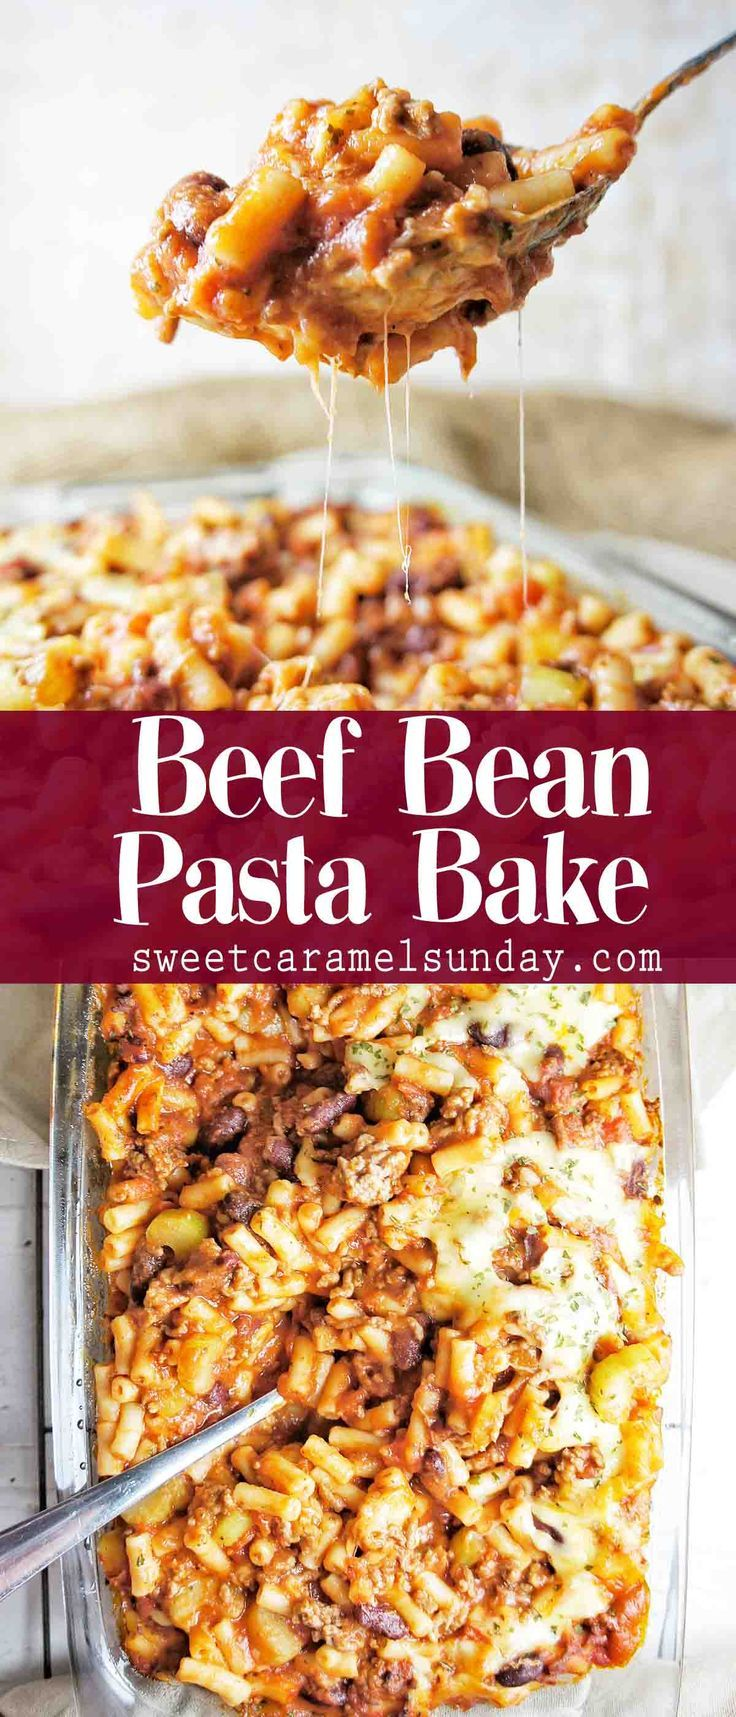 Beef Bean Pasta Bake This Cheesy Mince Pasta Bake Will Quickly Become A Family Favourite An Easy R Easy Pasta Recipes Minced Beef Recipes Mince Recipes Dinner